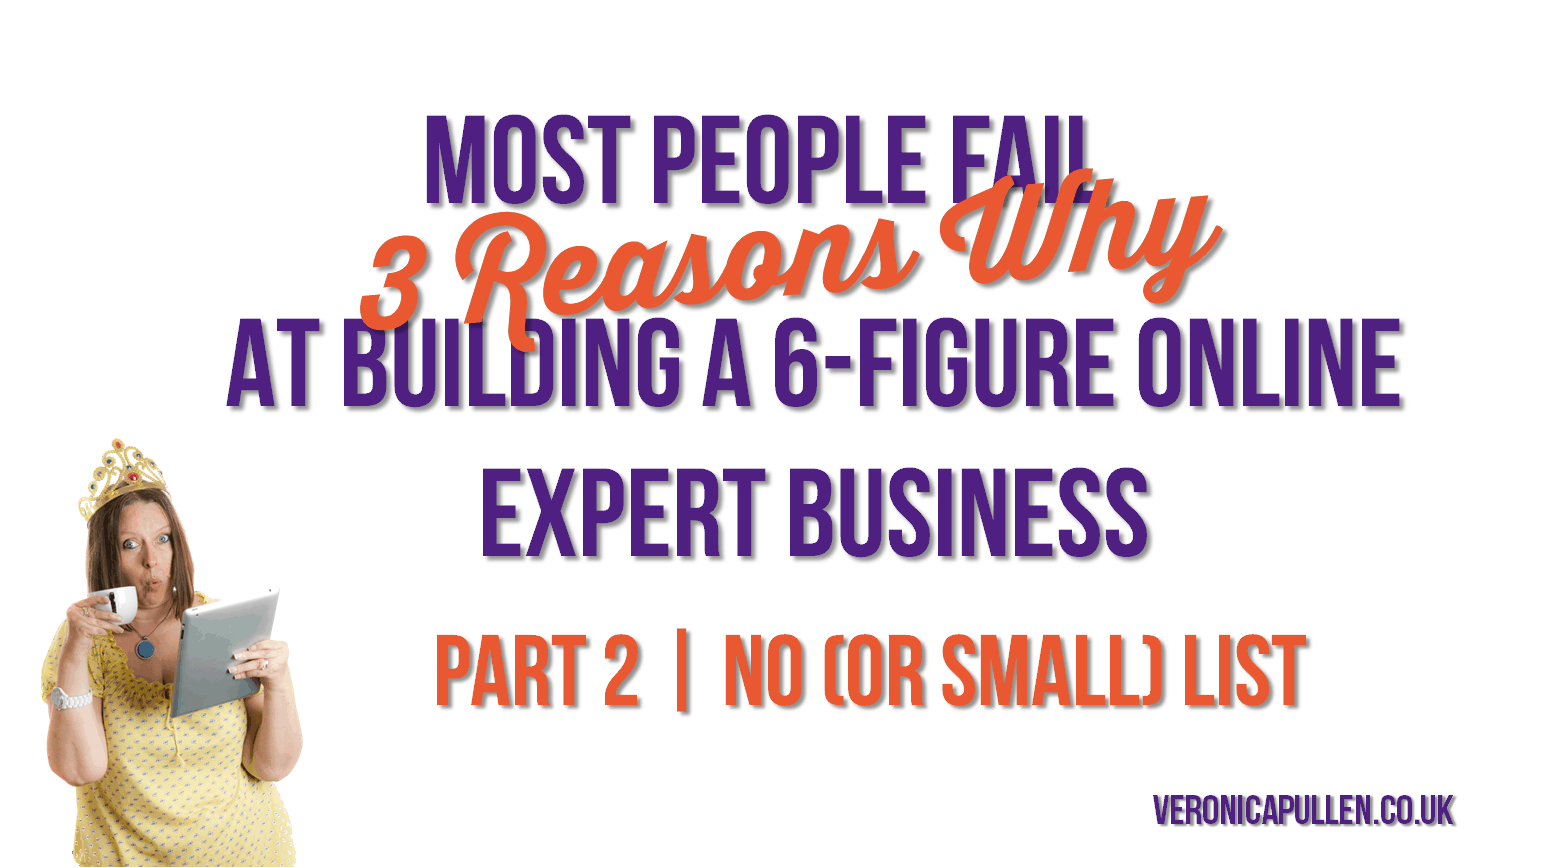 The Top 3 Reasons Why Most People Fail To Build A 6-Figure Online Expert Business | Part 2: No Email List